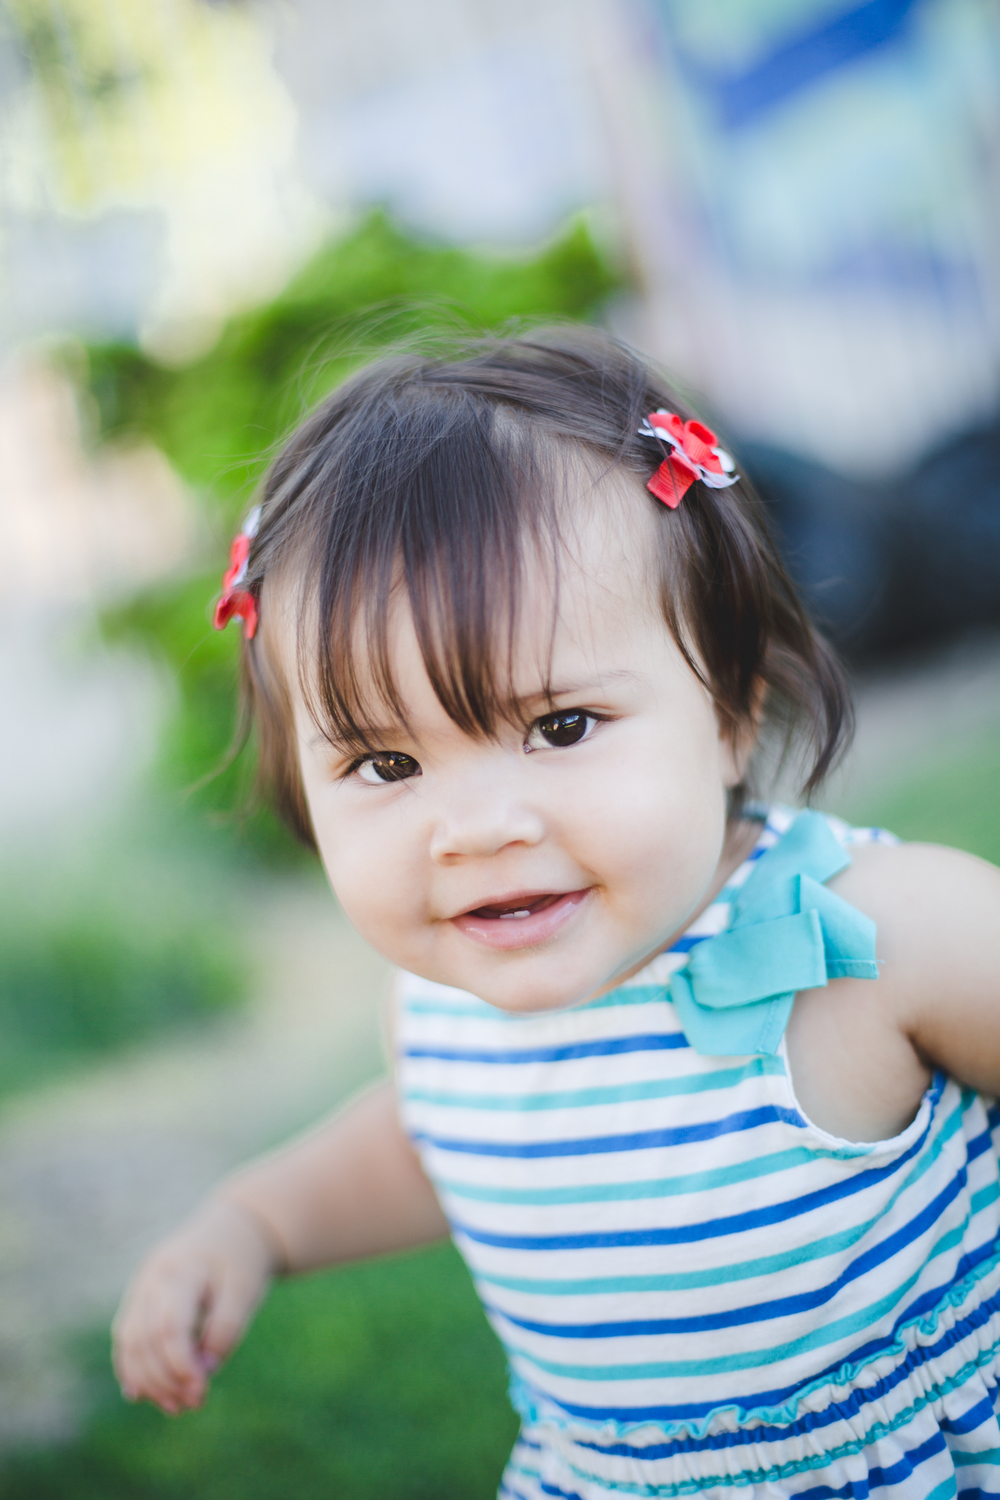 glendale-photographer-baby-mae-birthday-adorable-portrait